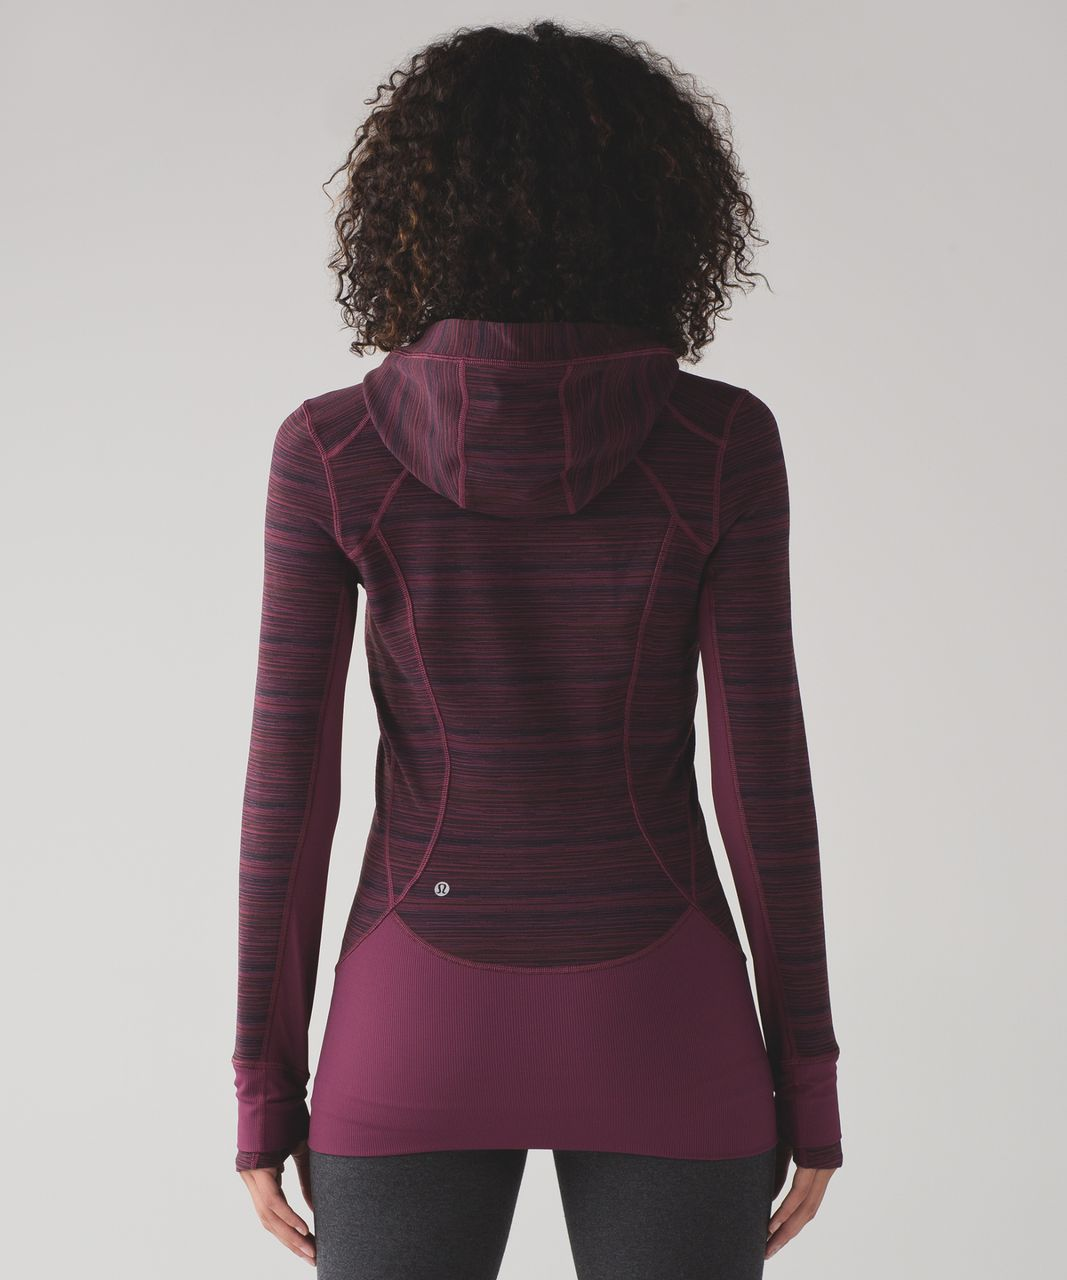 Lululemon Daily Practice Jacket - Cyber Red Grape Bordeaux Drama / Red Grape